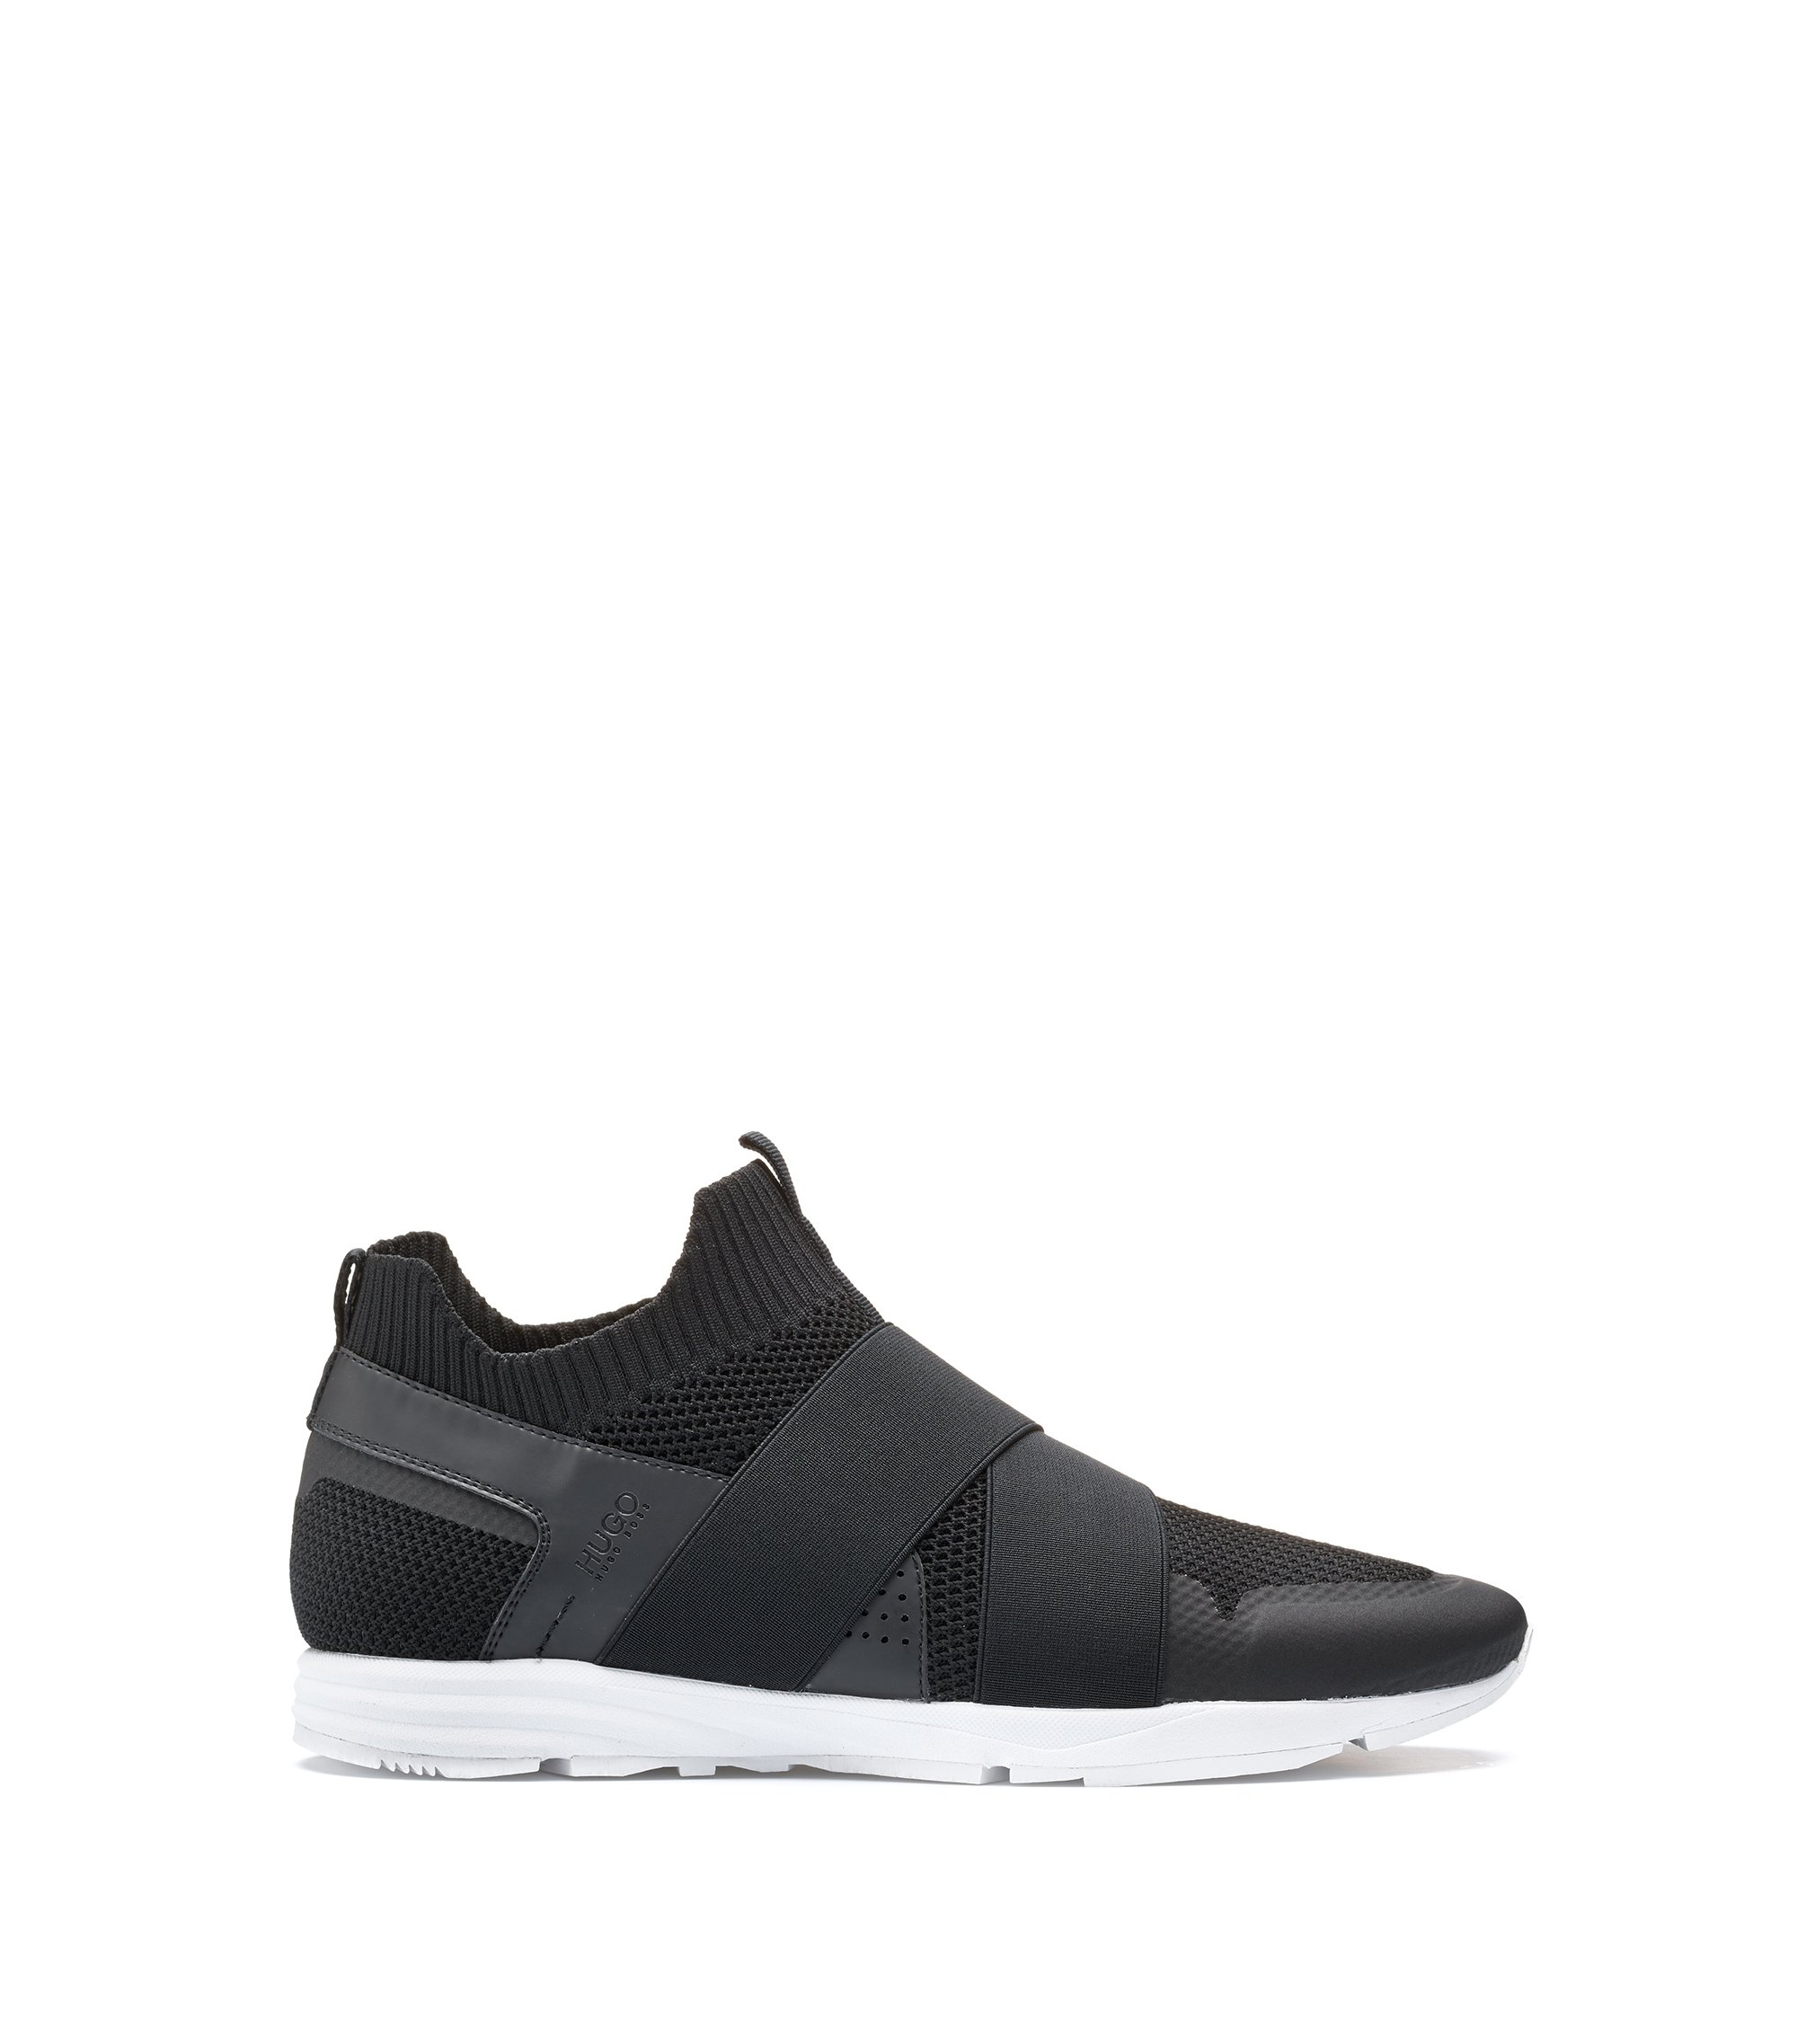 Slip-on hybrid trainers with Vibram sole, Black